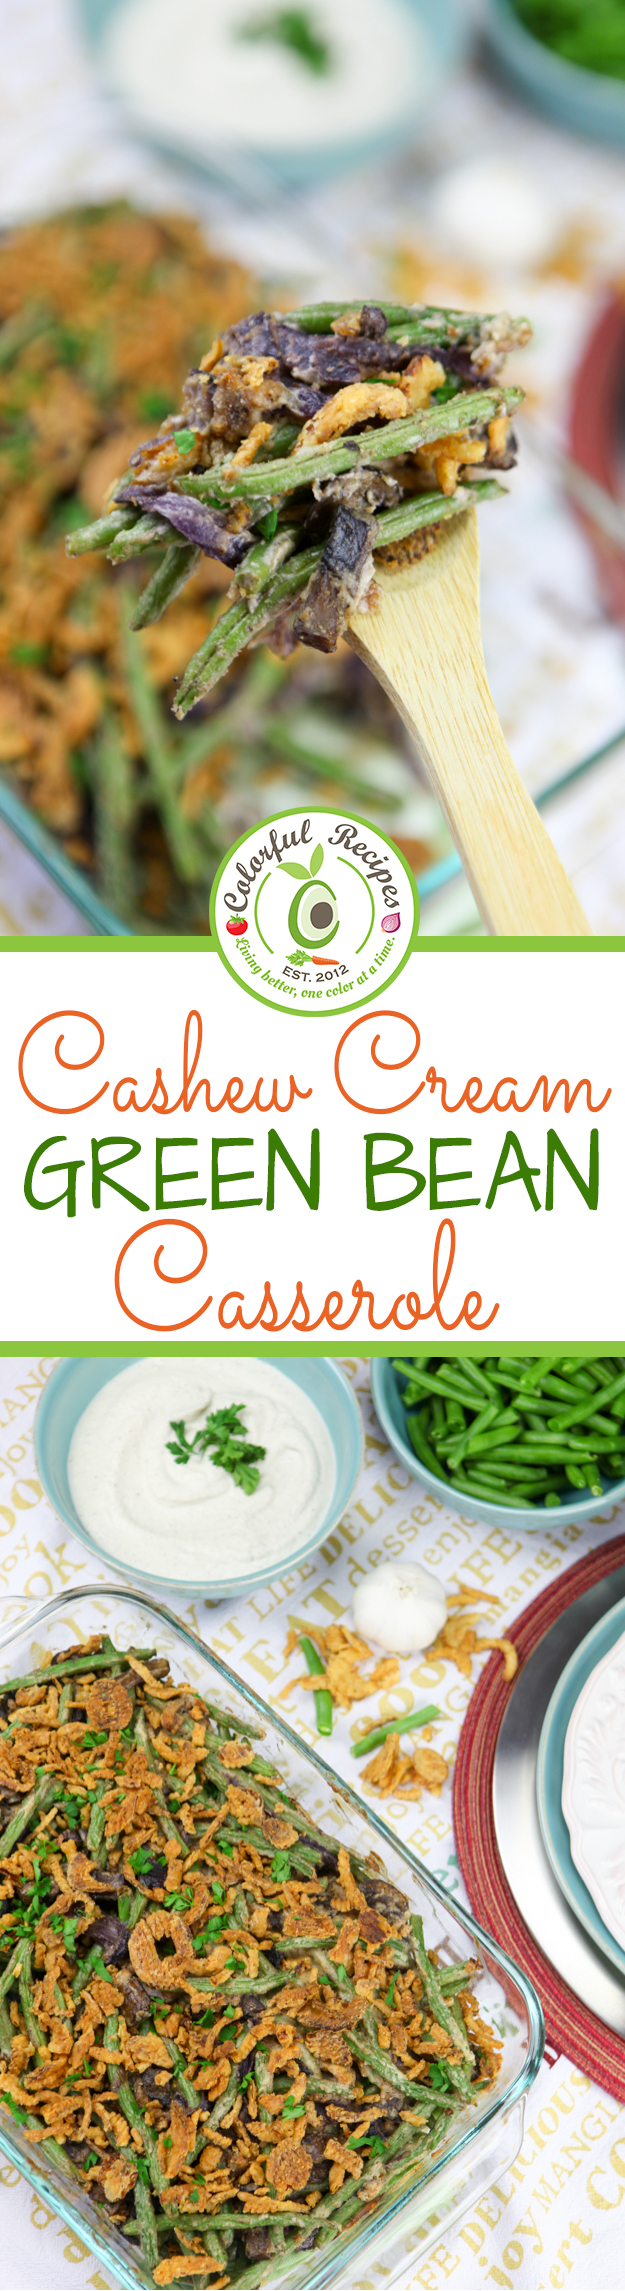 ... green bean casserole cebh style 3 5 3226 cashew cream green bean